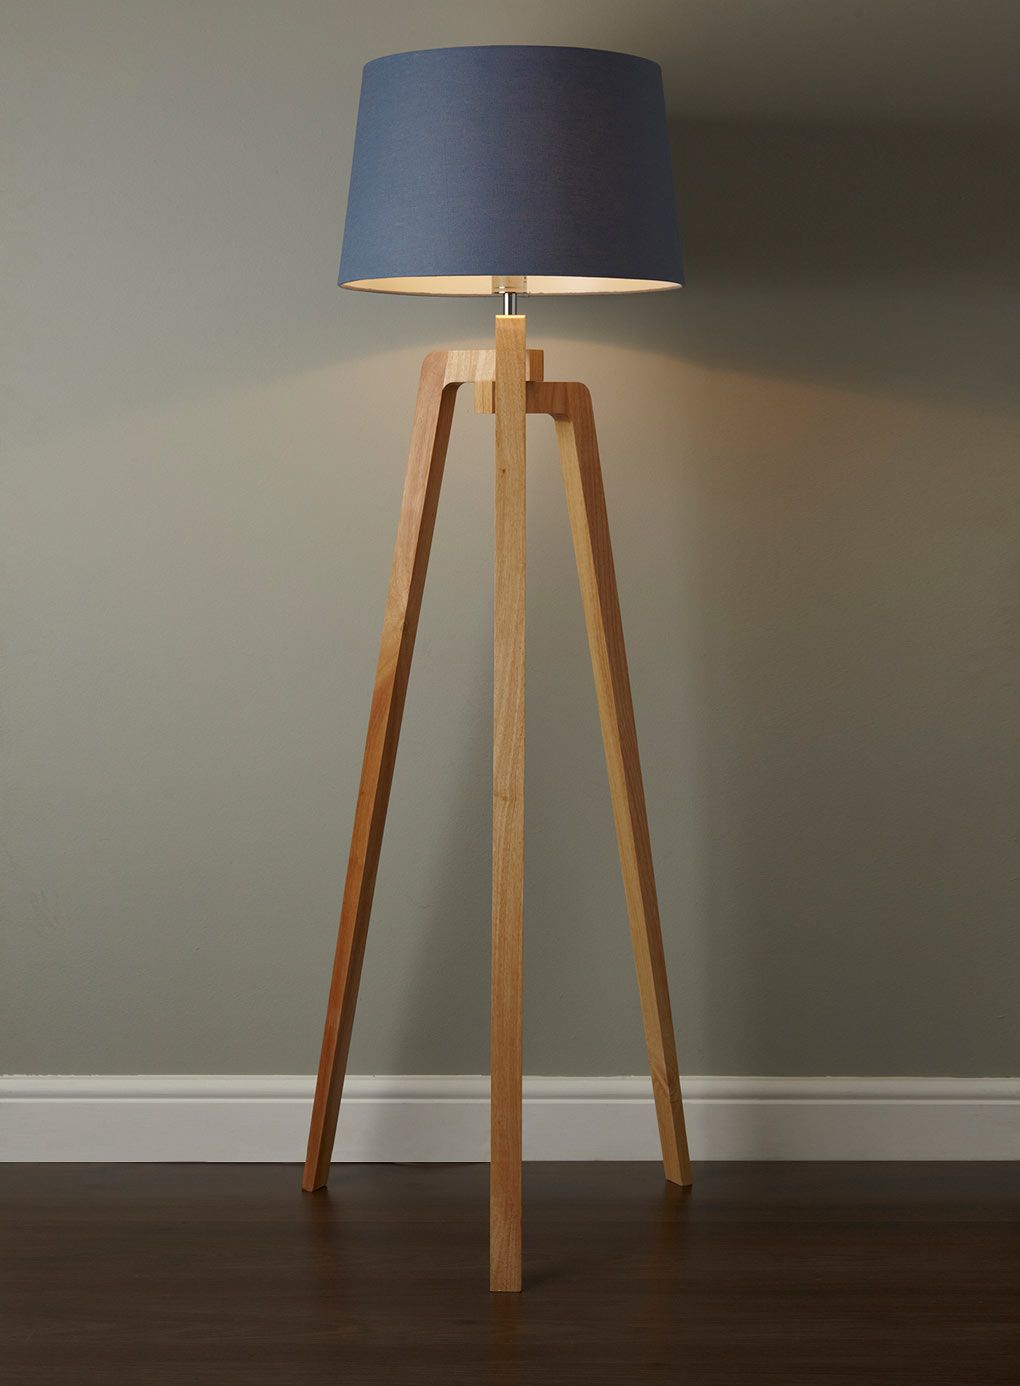 Pin By Natalia Triana On Ch Wooden Floor Lamps Wood Floor Lamp Wooden Tripod Floor Lamp